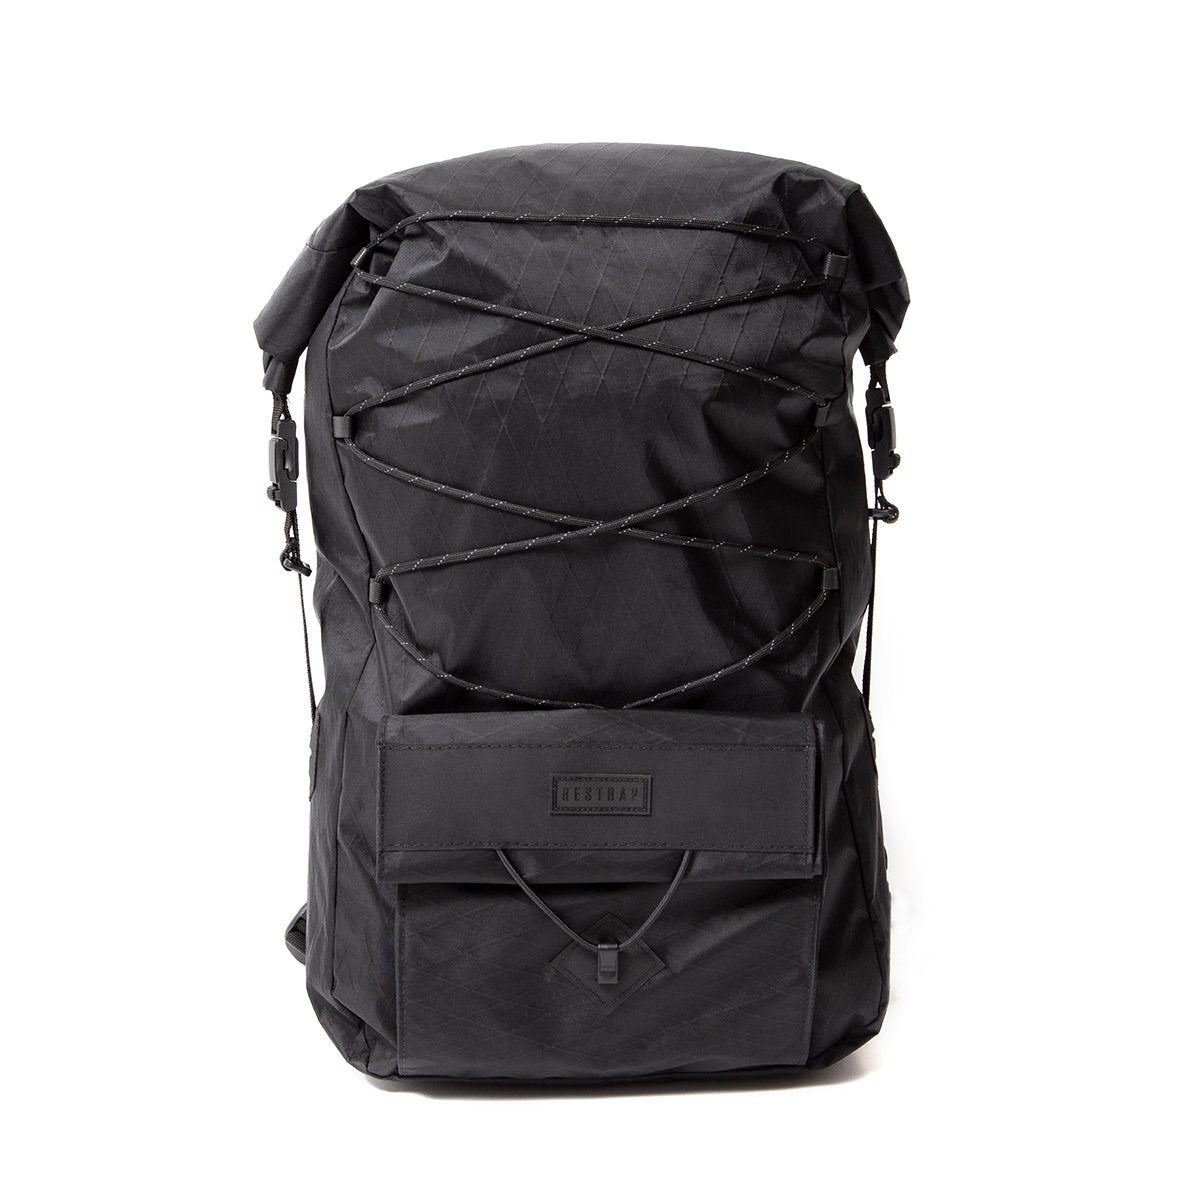 Ascent Backpack